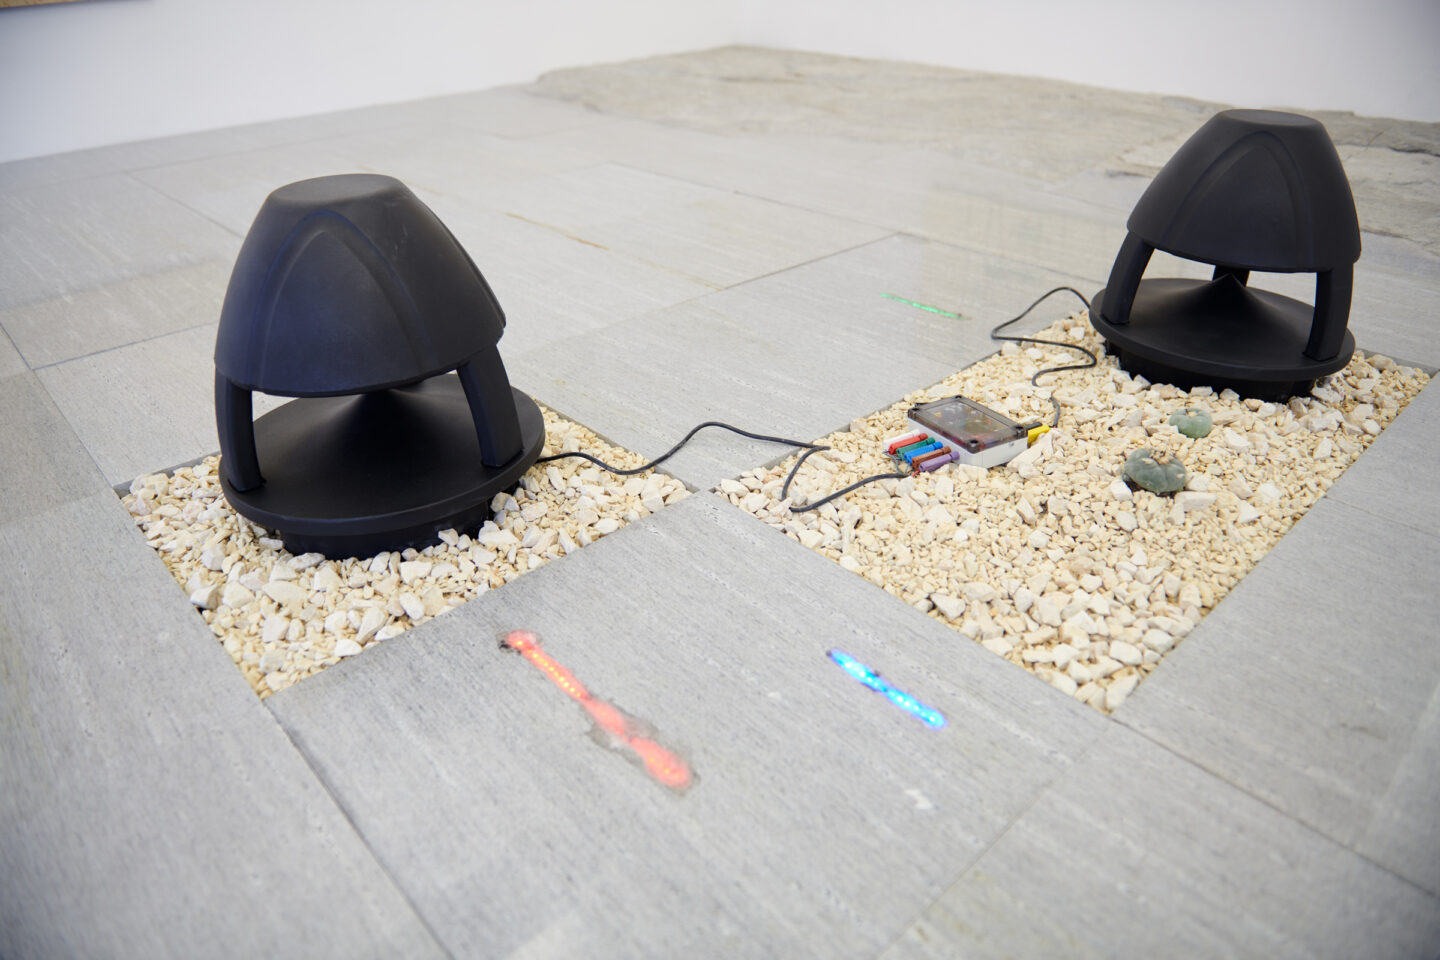 Exhibition View Haroon Mirza and Gaia Fugazza Groupshow «Antidotes and their Counterparts; view on Haroon Mirza, A Platform for Breathing, 2019» at Häusler Contemporary Zürich, Zurich, 2019 / Photo: Mischa Scherrer / Courtesy: the artist and Häusler Contemporary